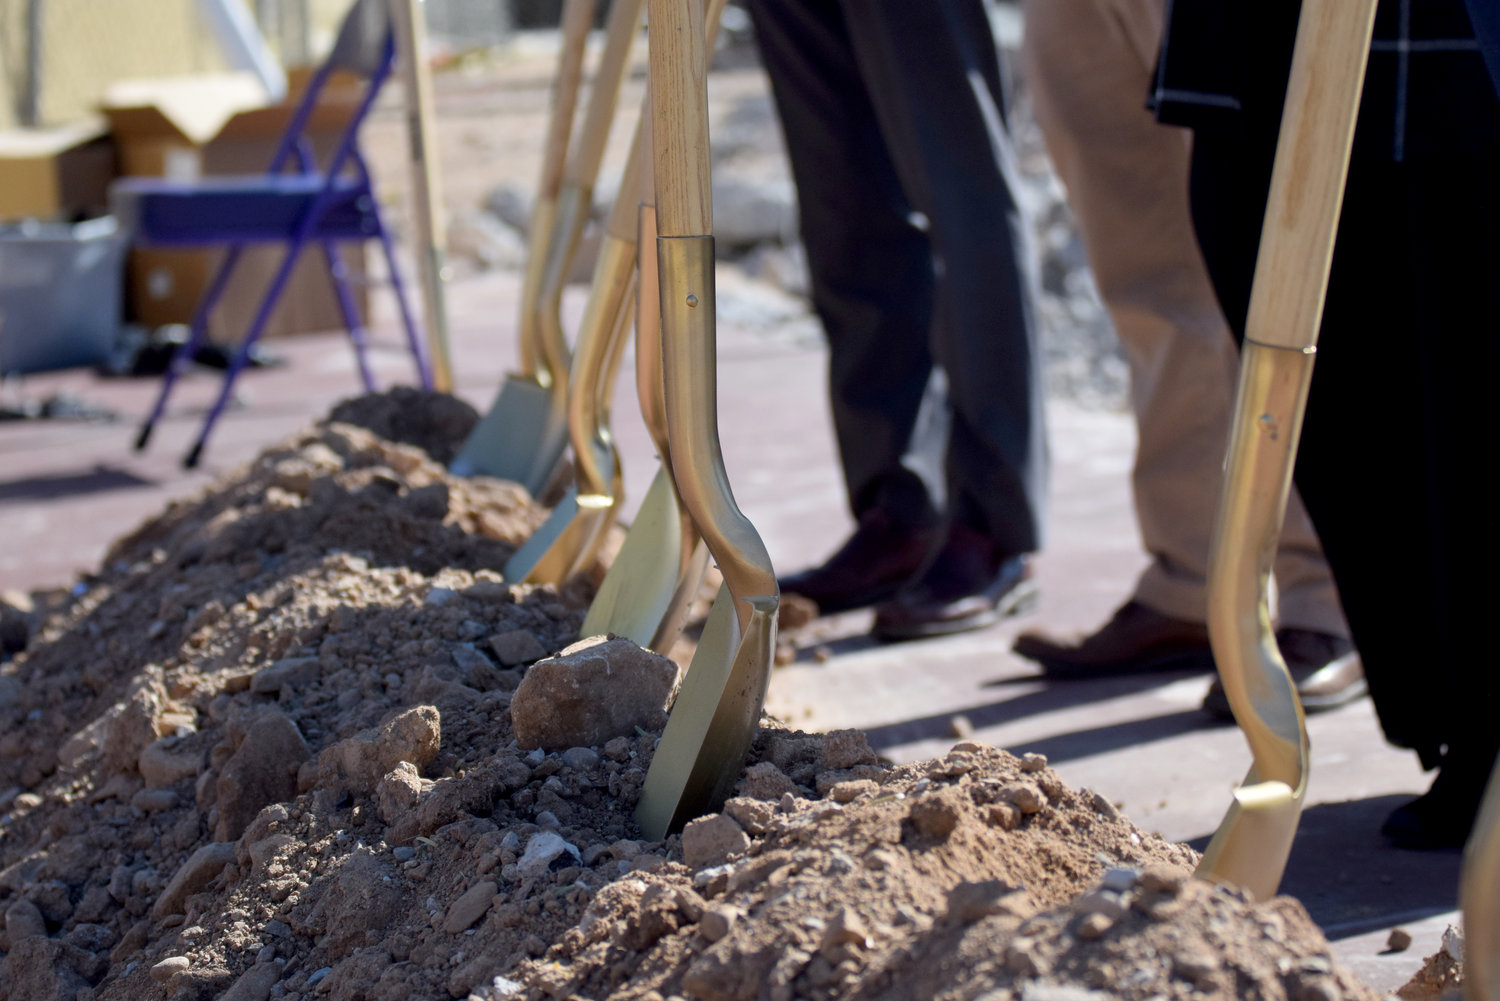 As part of the Nov. 5 groundbreaking, donors and community members used gold shovels to move dirt as part of the ceremony at NDP.